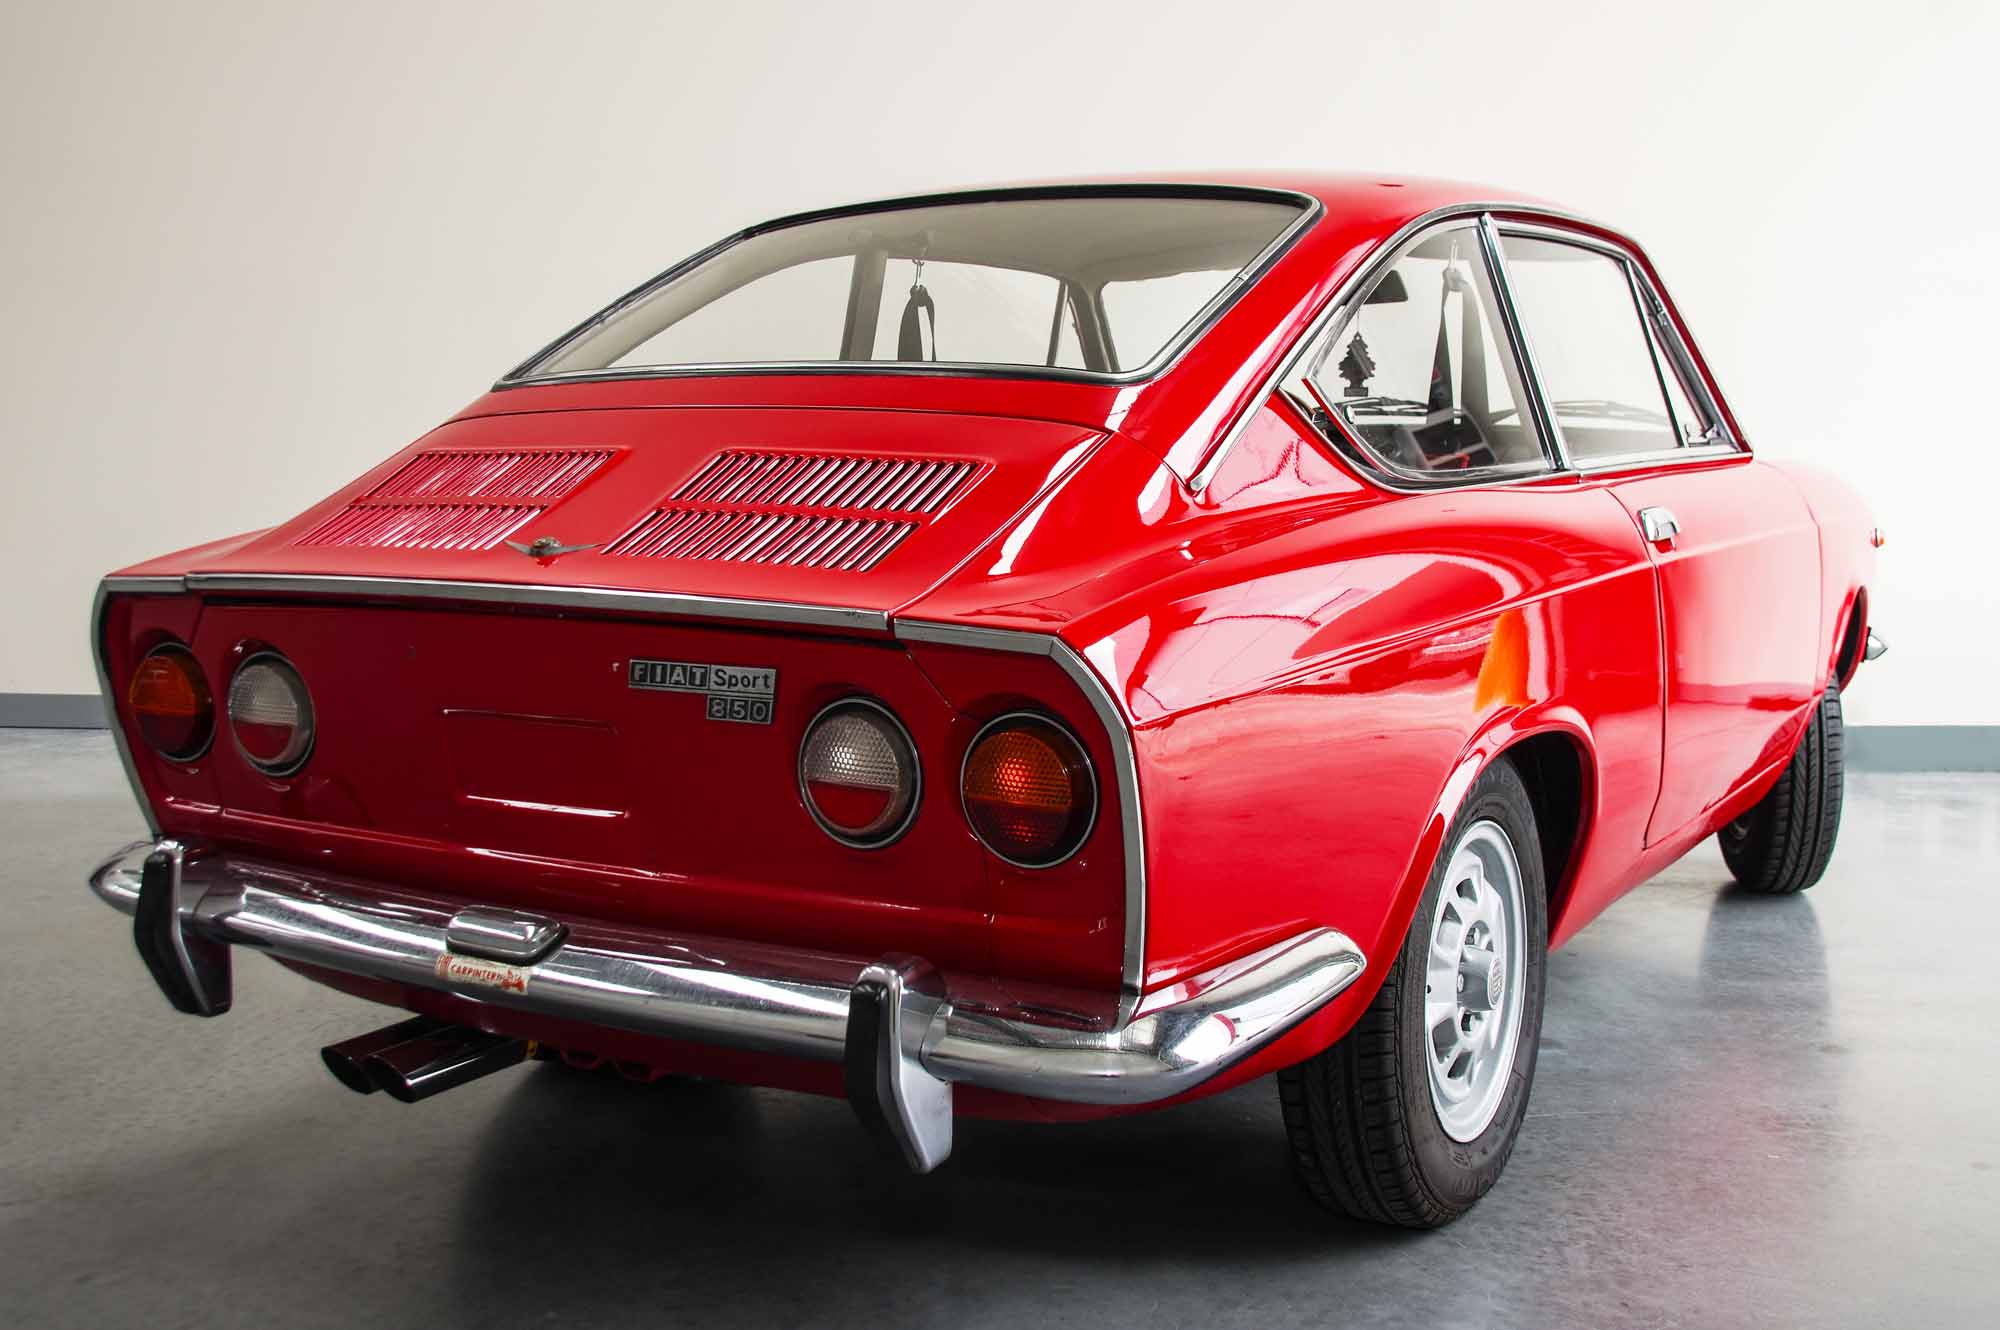 Fiat Coupe Fiat 850 Coupe Collectable Classic Cars